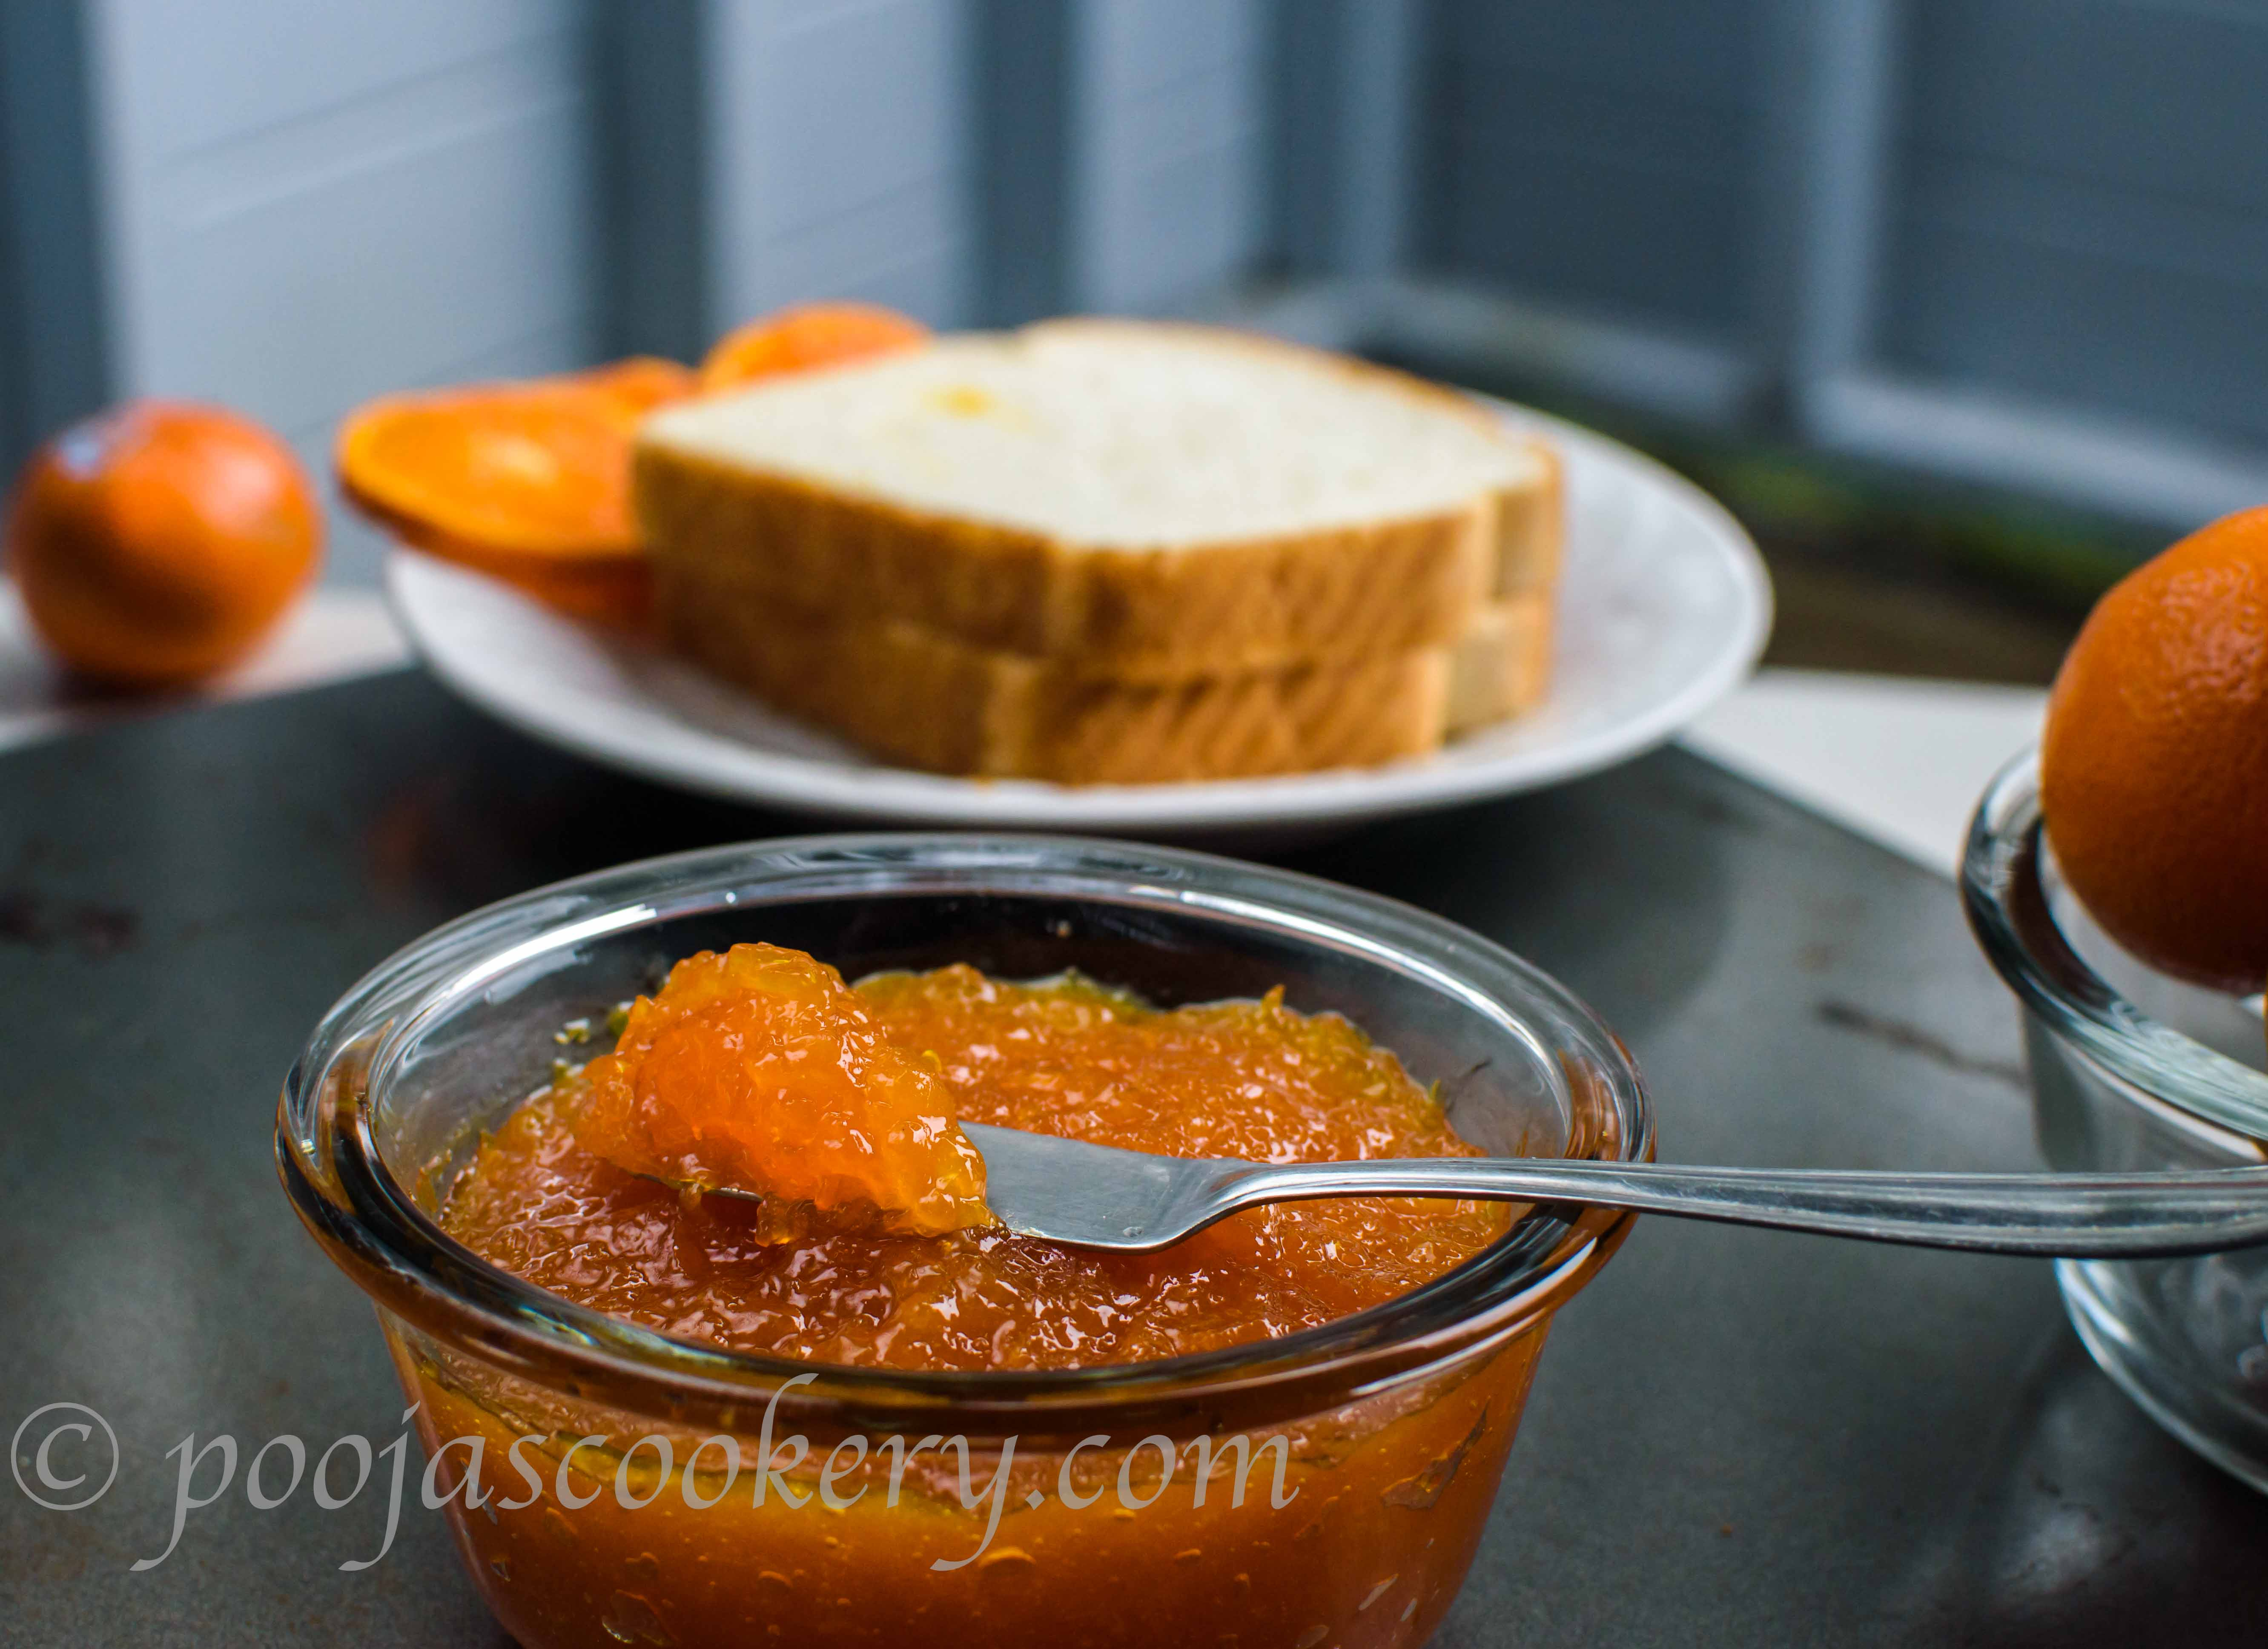 Navel Orange Marmalade/ Ground Goat Soup|poojascookery.com